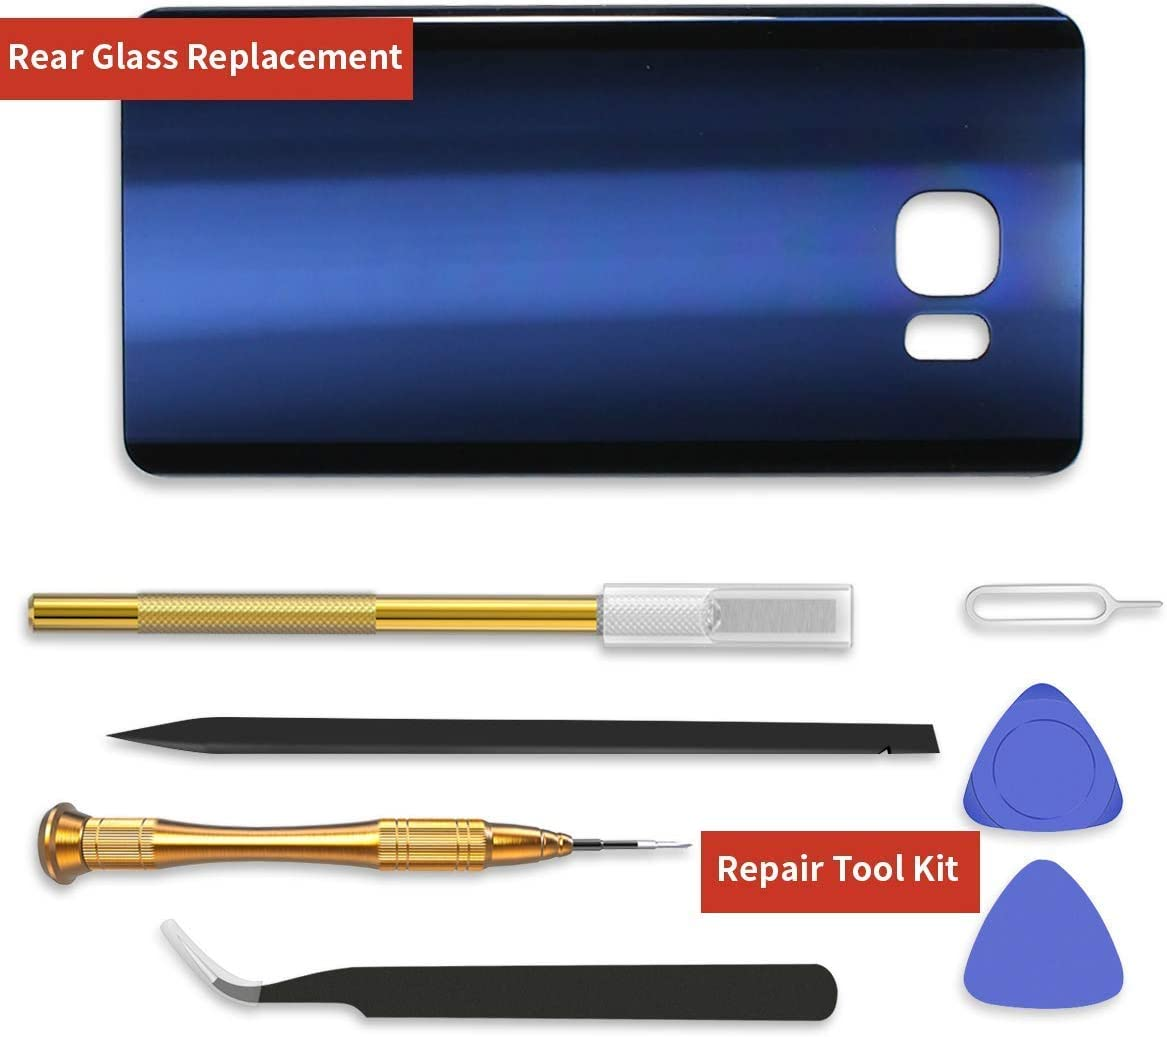 24-Month Warranty Blue 2600mAh 0 Cycle Battery Replacement for Samsung Galaxy S6e YONTEX Galaxy S6 Edge Battery with Back Glass Replacement and 1 Complete Repair Tool Kit